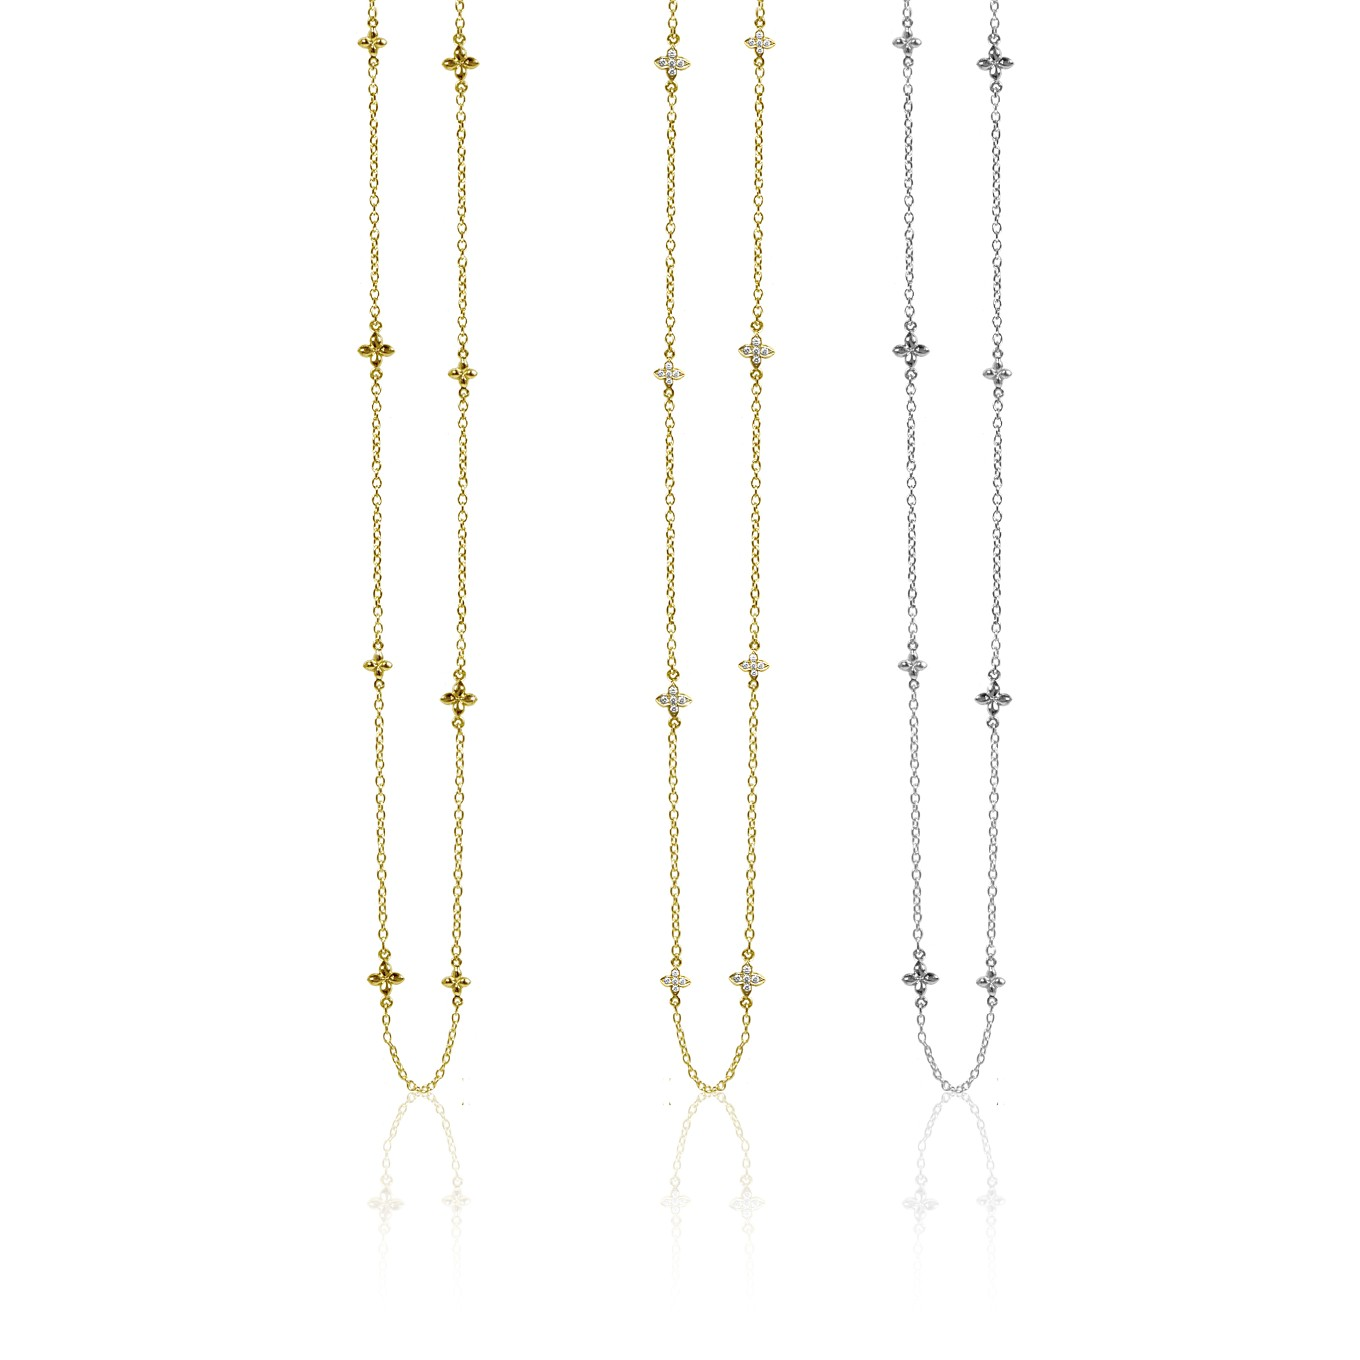 SEVILLA 16 INCH NECKLACES IN STERLING SILVER, GOLD, OR GOLD & DIAMONDS